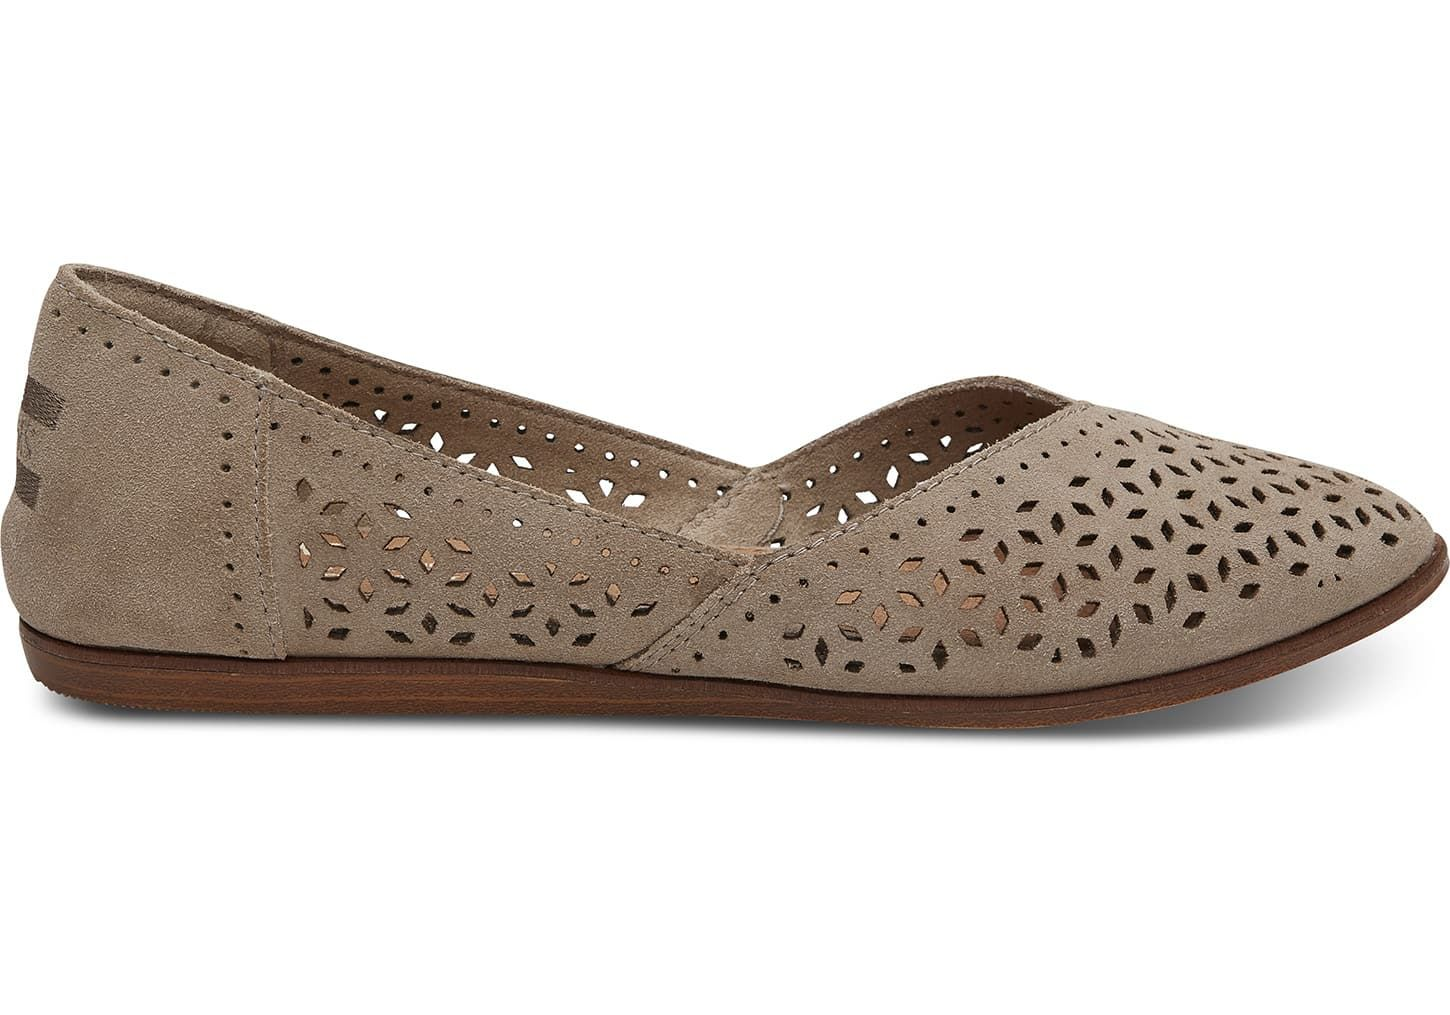 c0ef4782f76 Desert Taupe Perforated Suede Women s Jutti Flats in 2019